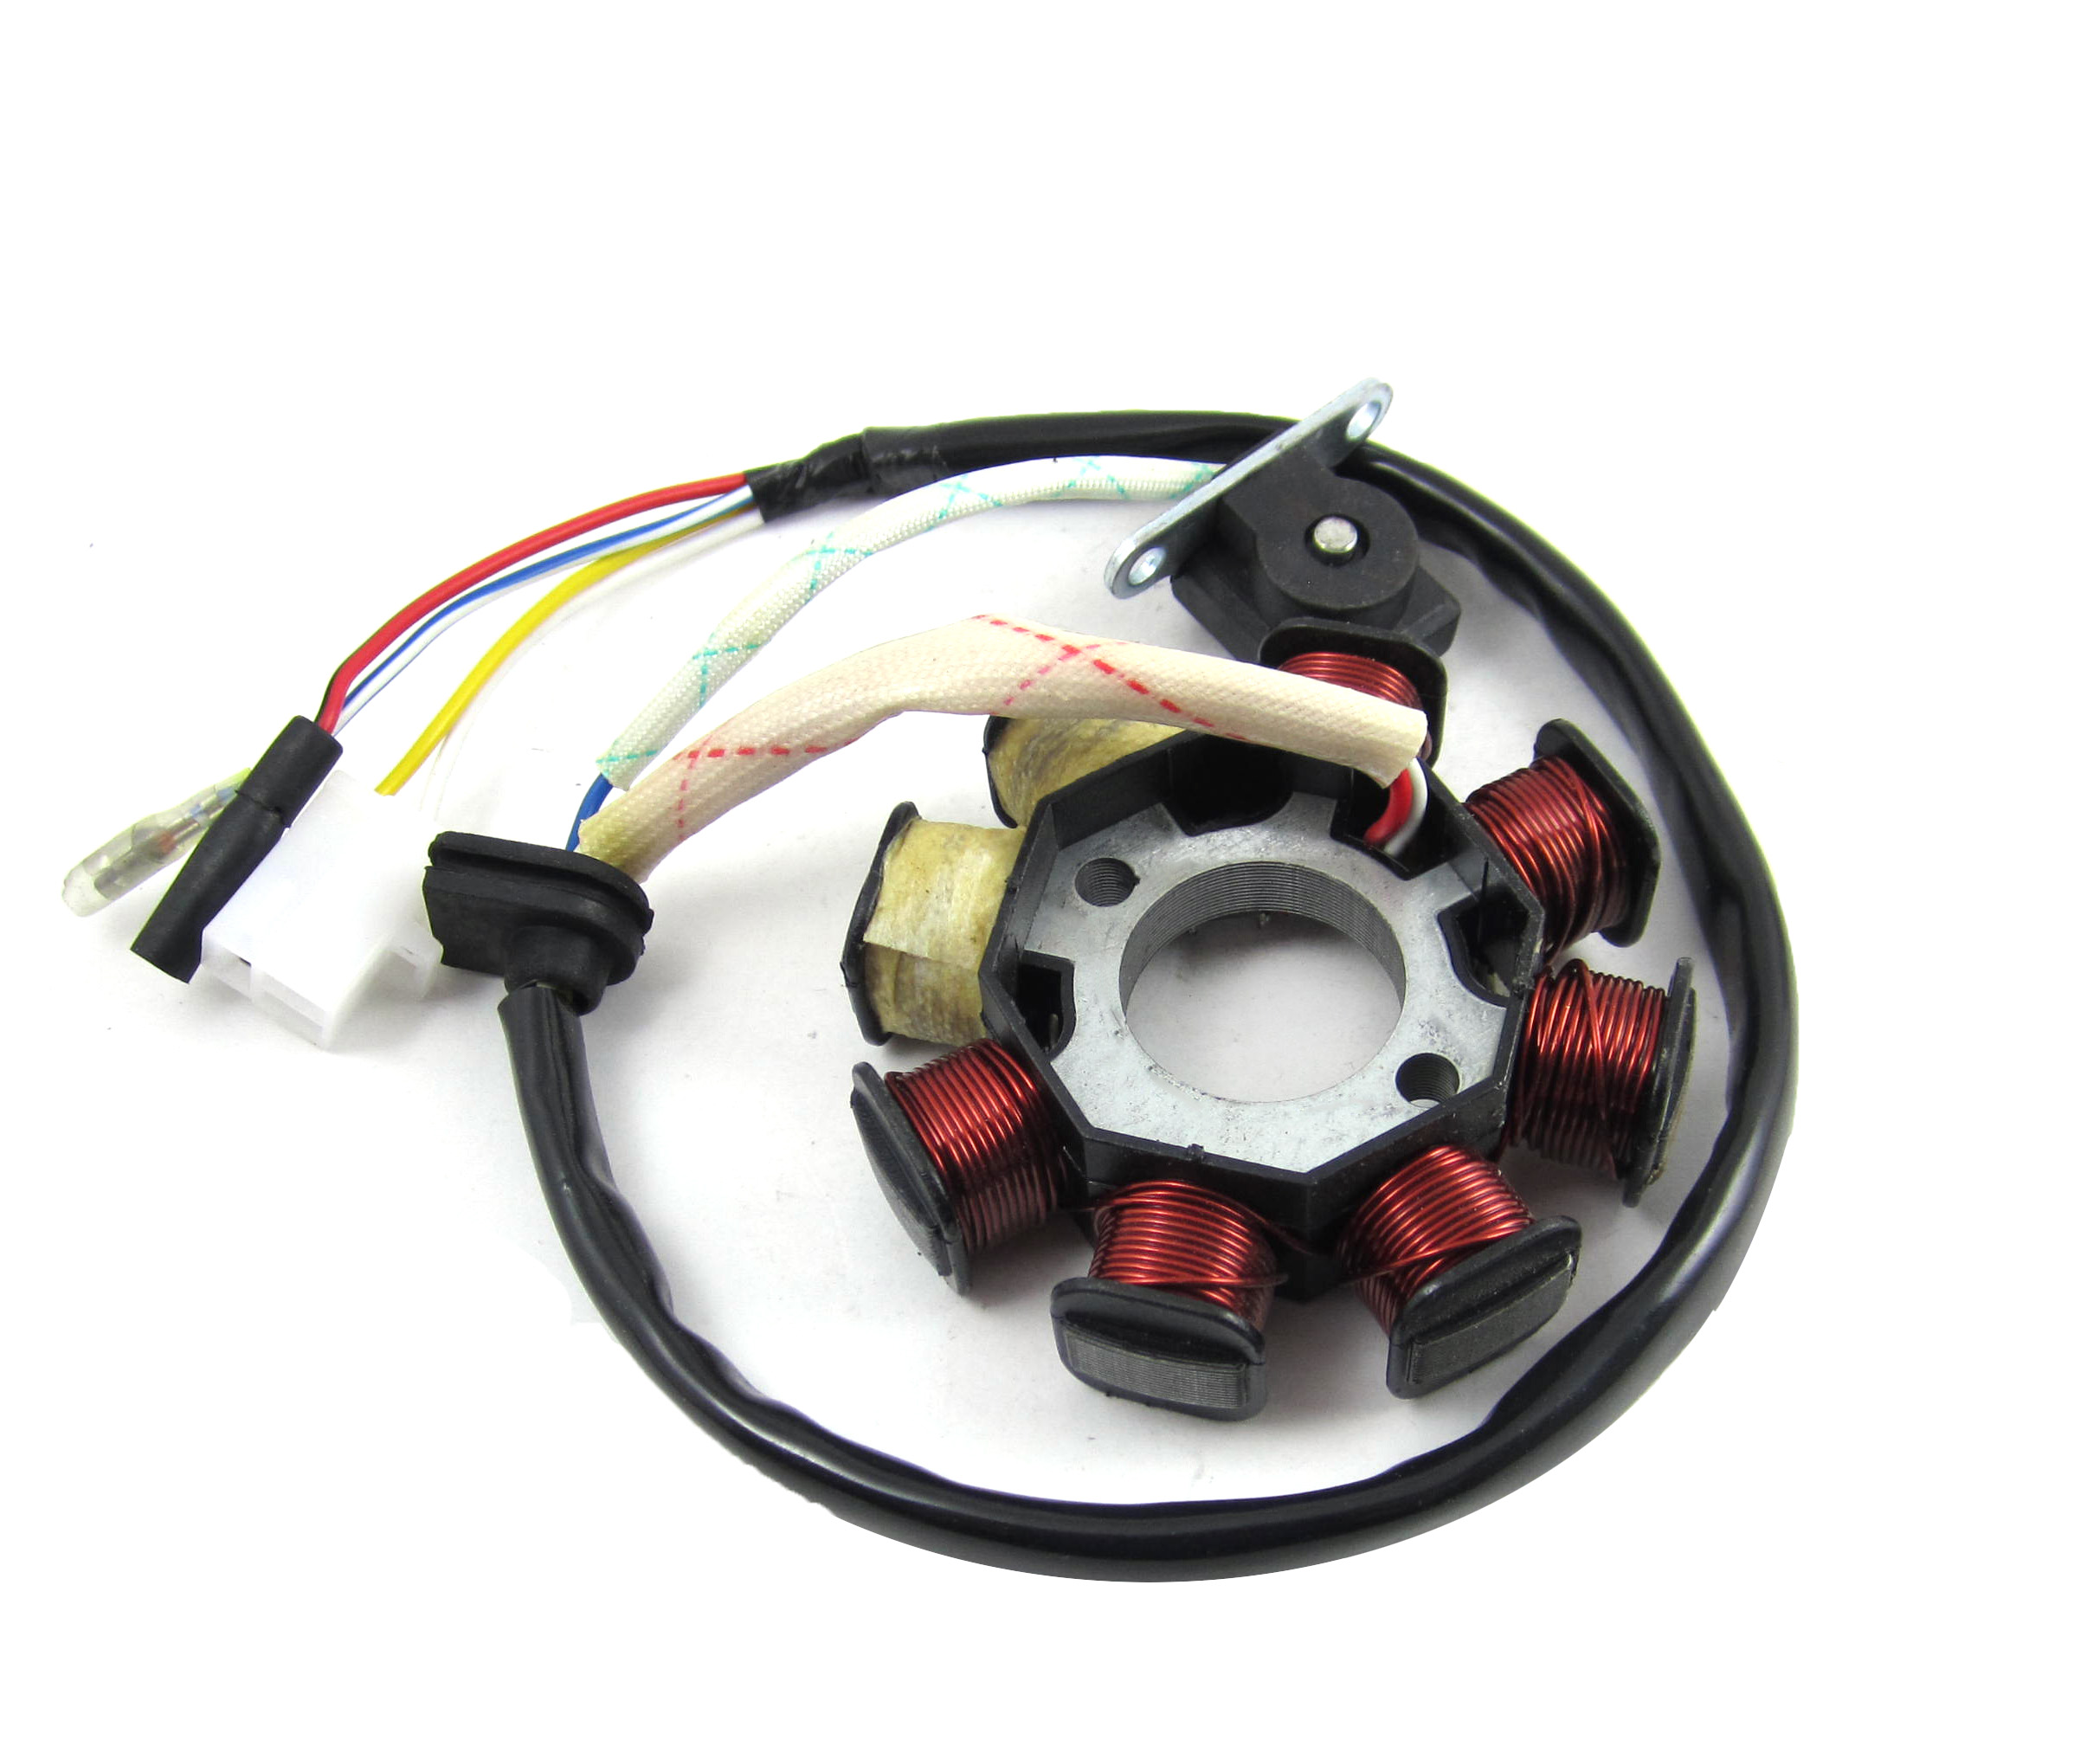 Chinese Wholesale Dirt Bikes Chinese Stator Magneto 8 Coil For Gy6 50cc Scooter Atv